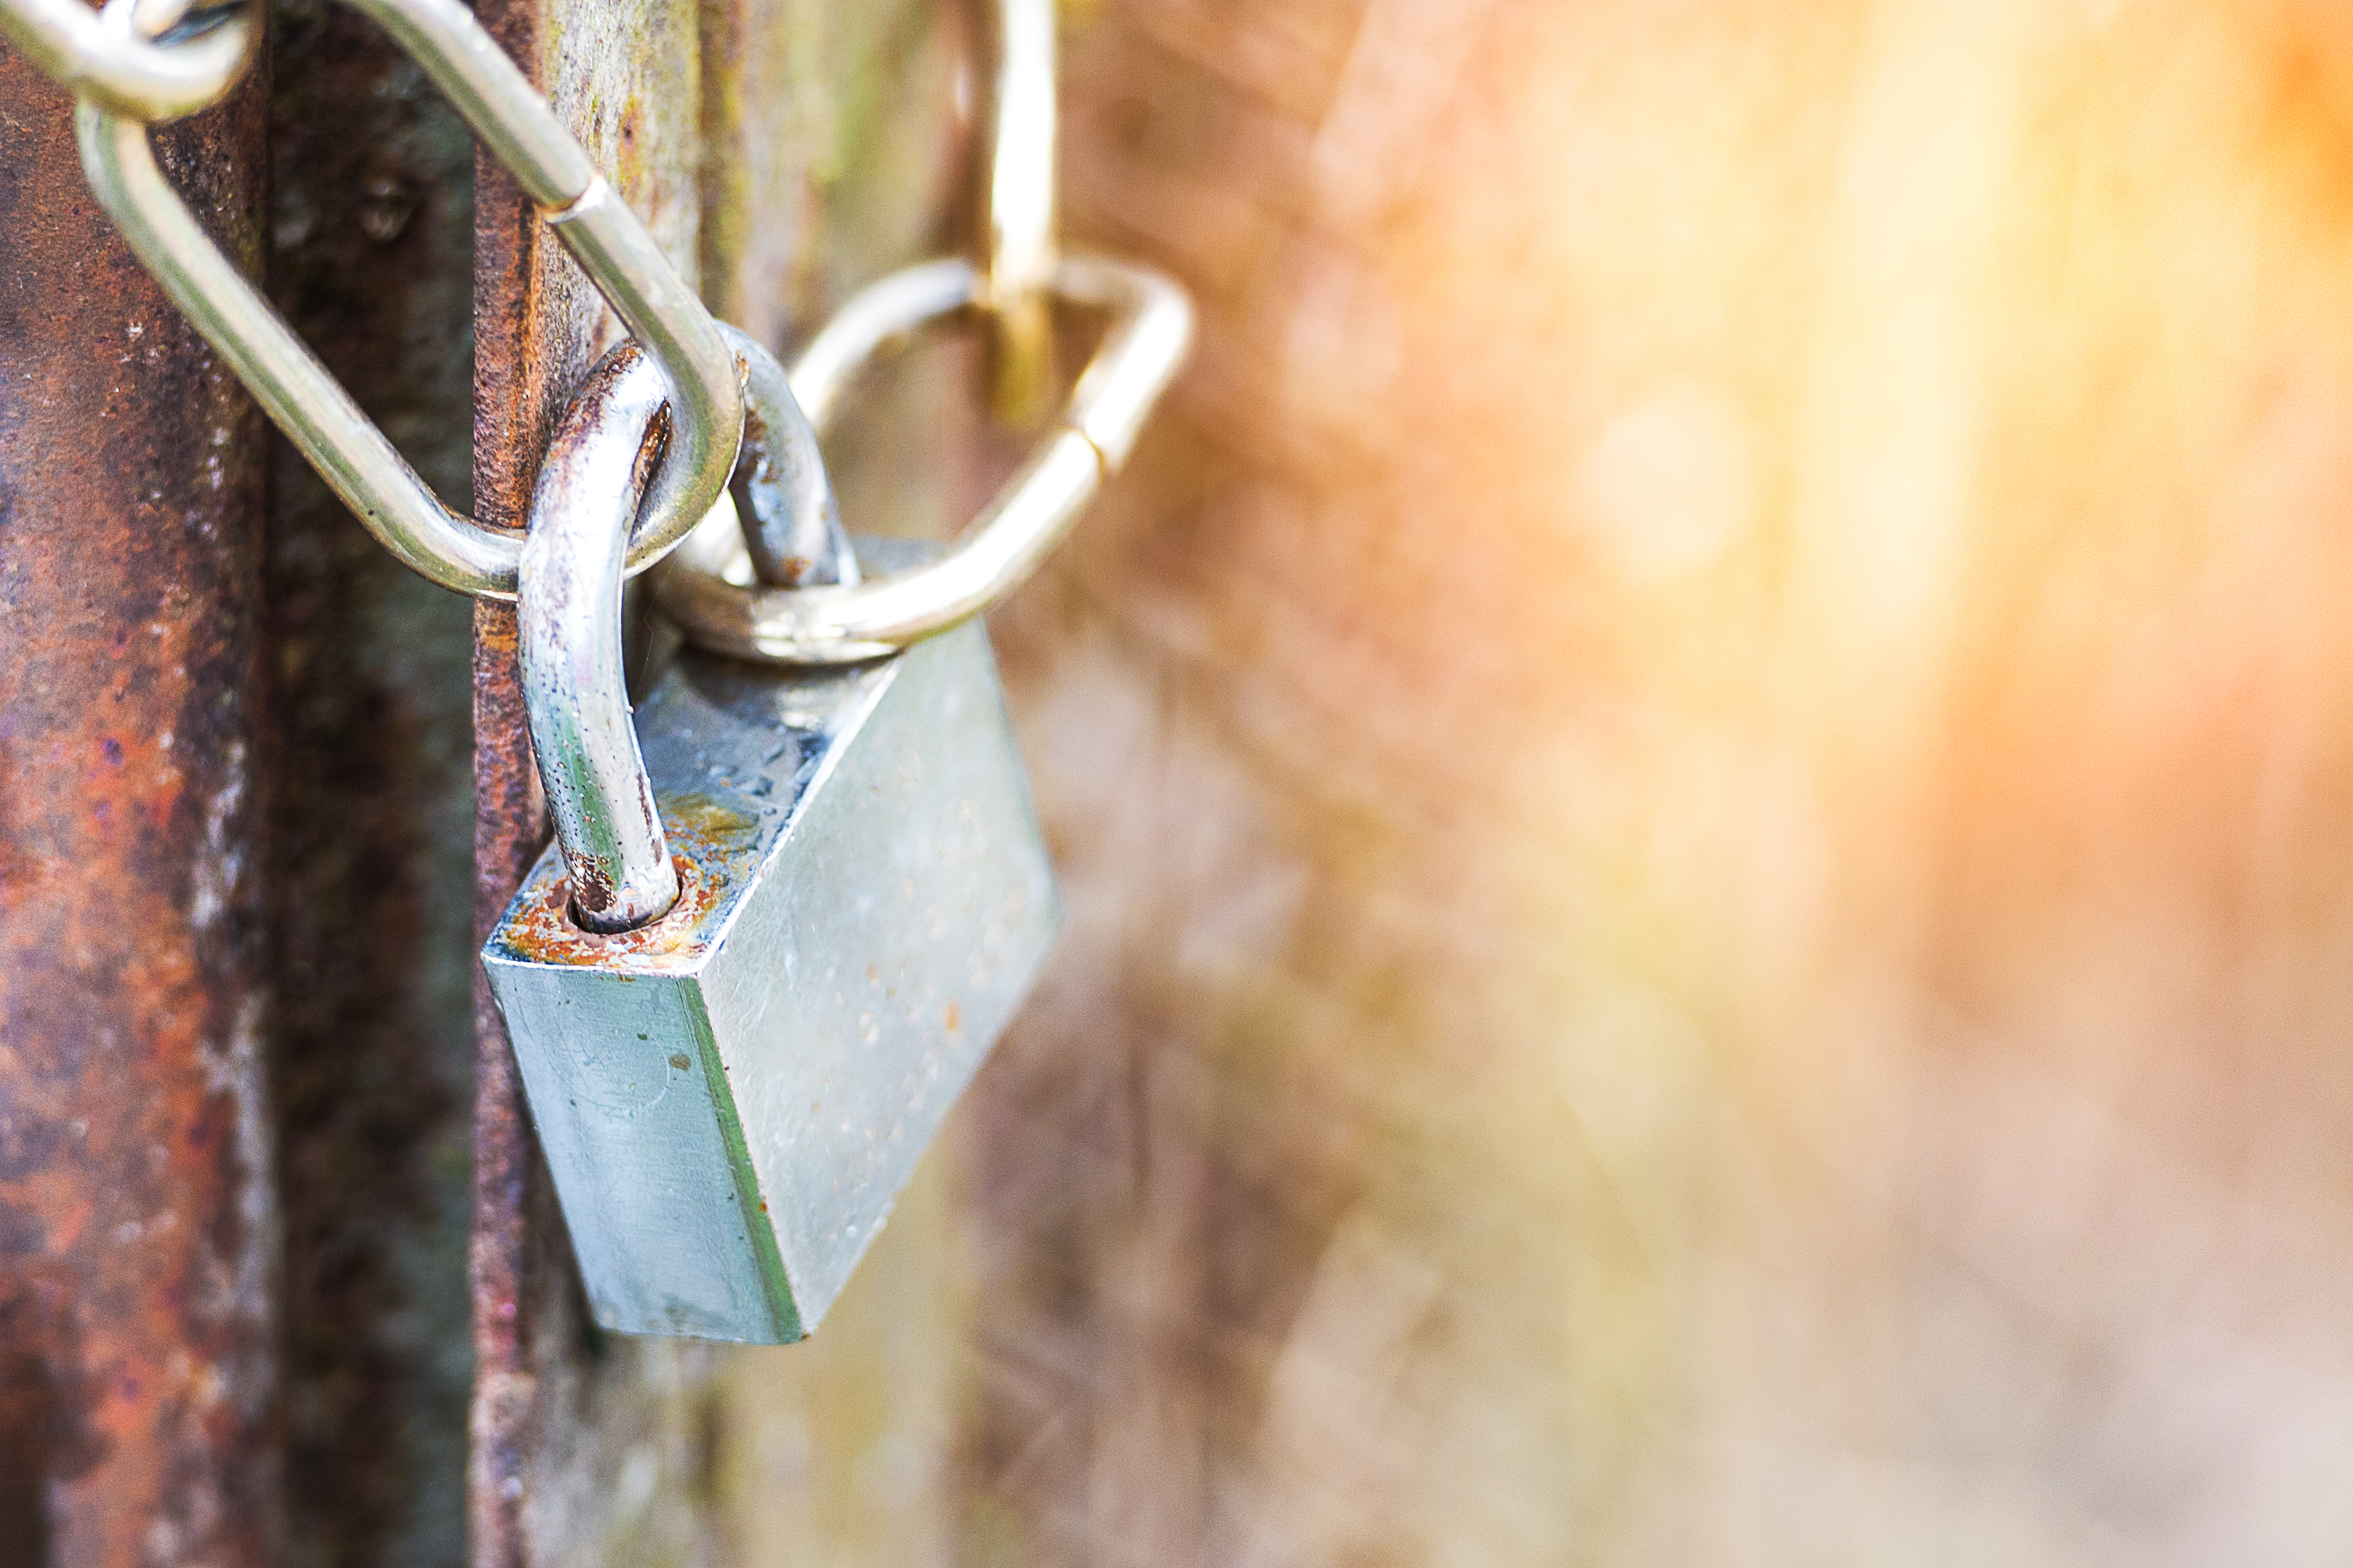 Anna Nikonorova by Shutterstock payment security, fence locked with a chain